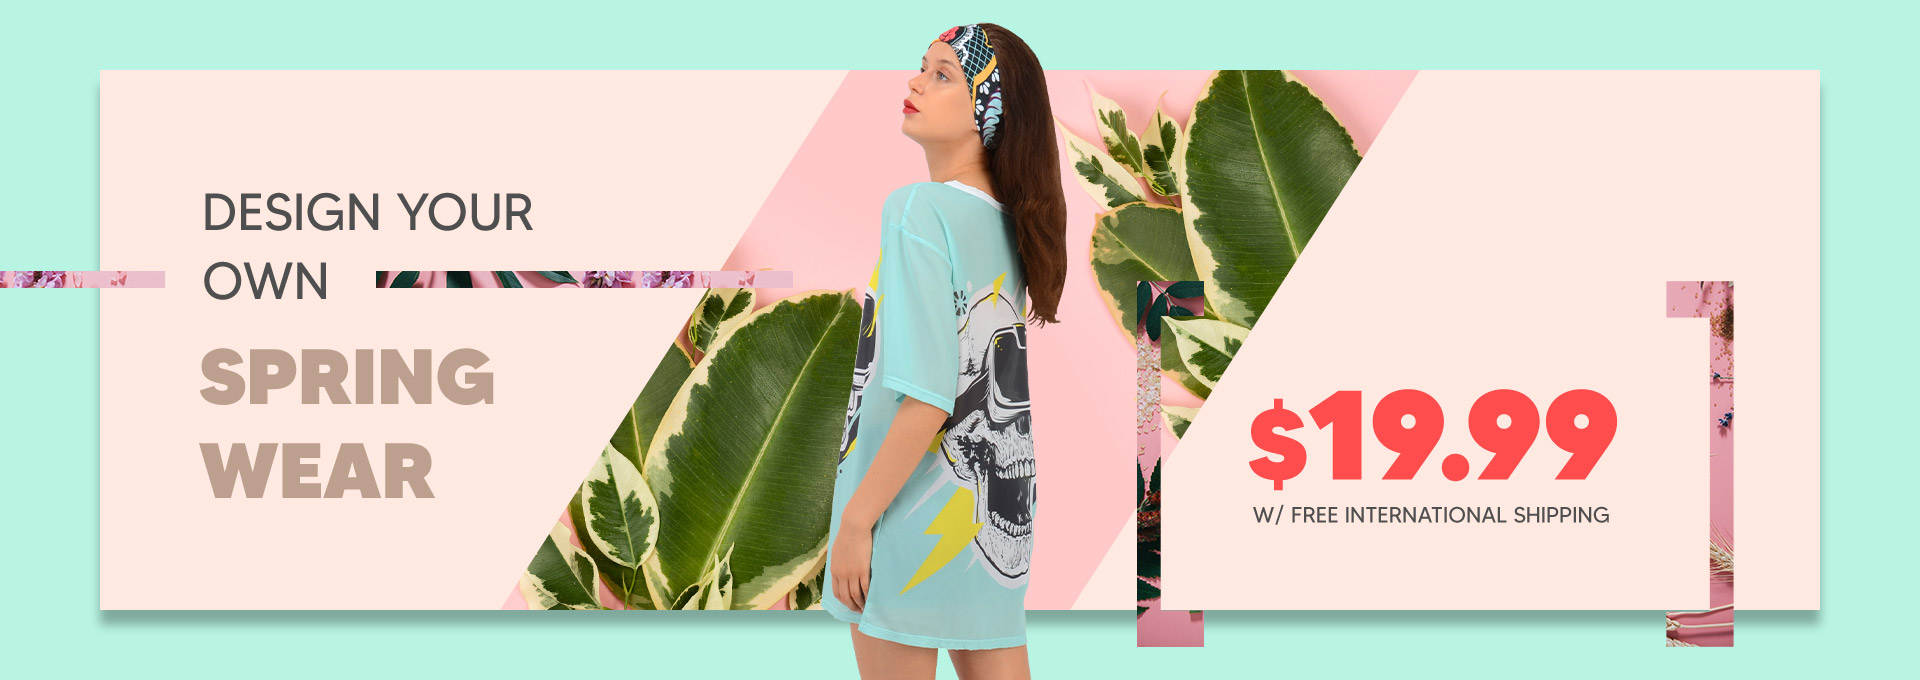 Design your own Spring wear:  $19.99 on Selected Items